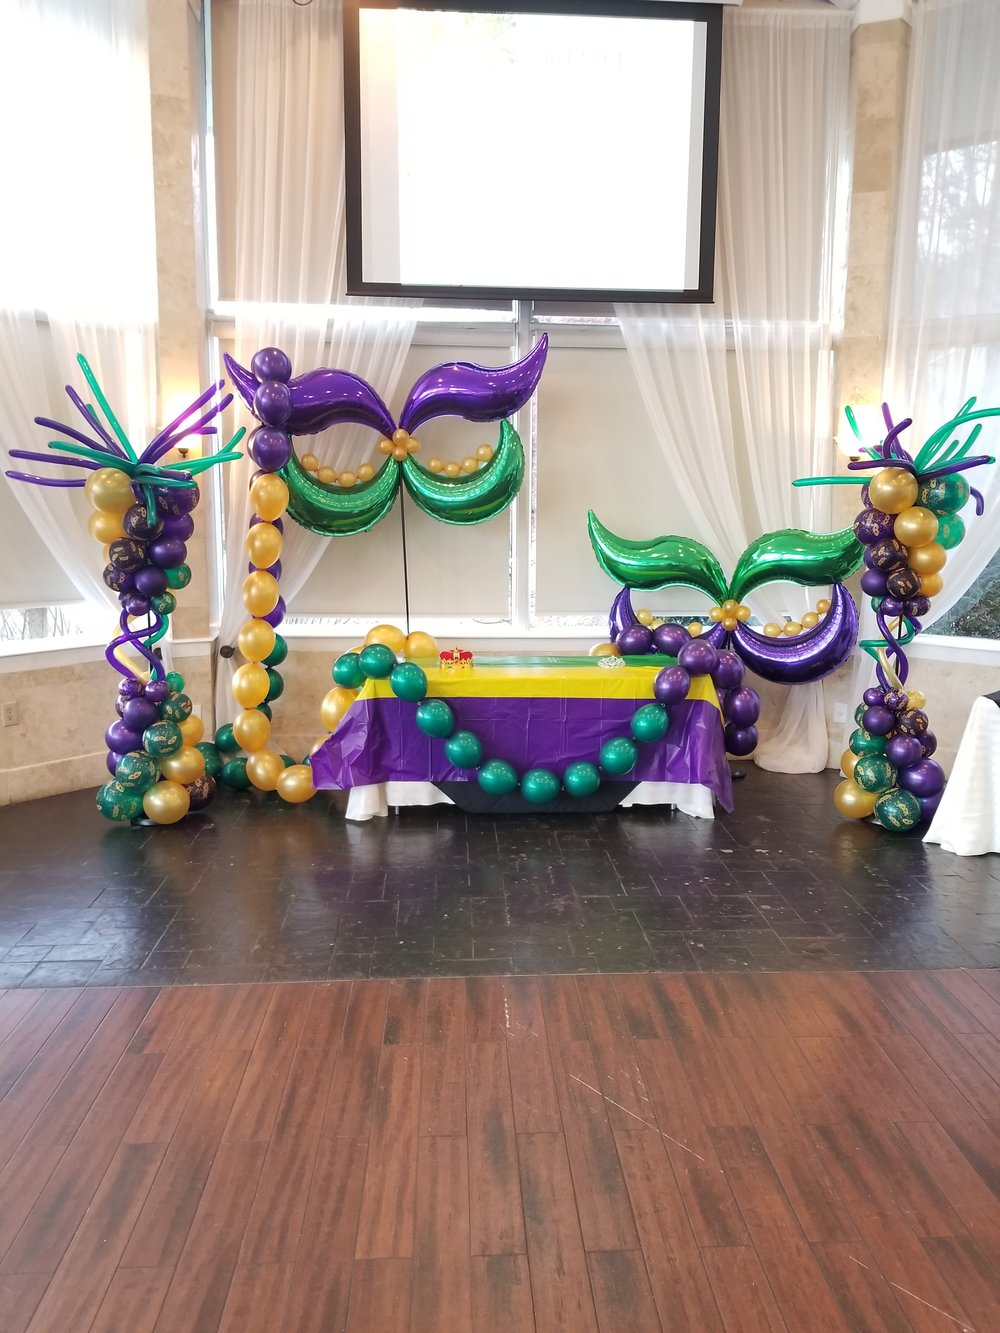 Mardi gras balloon decor.jpg